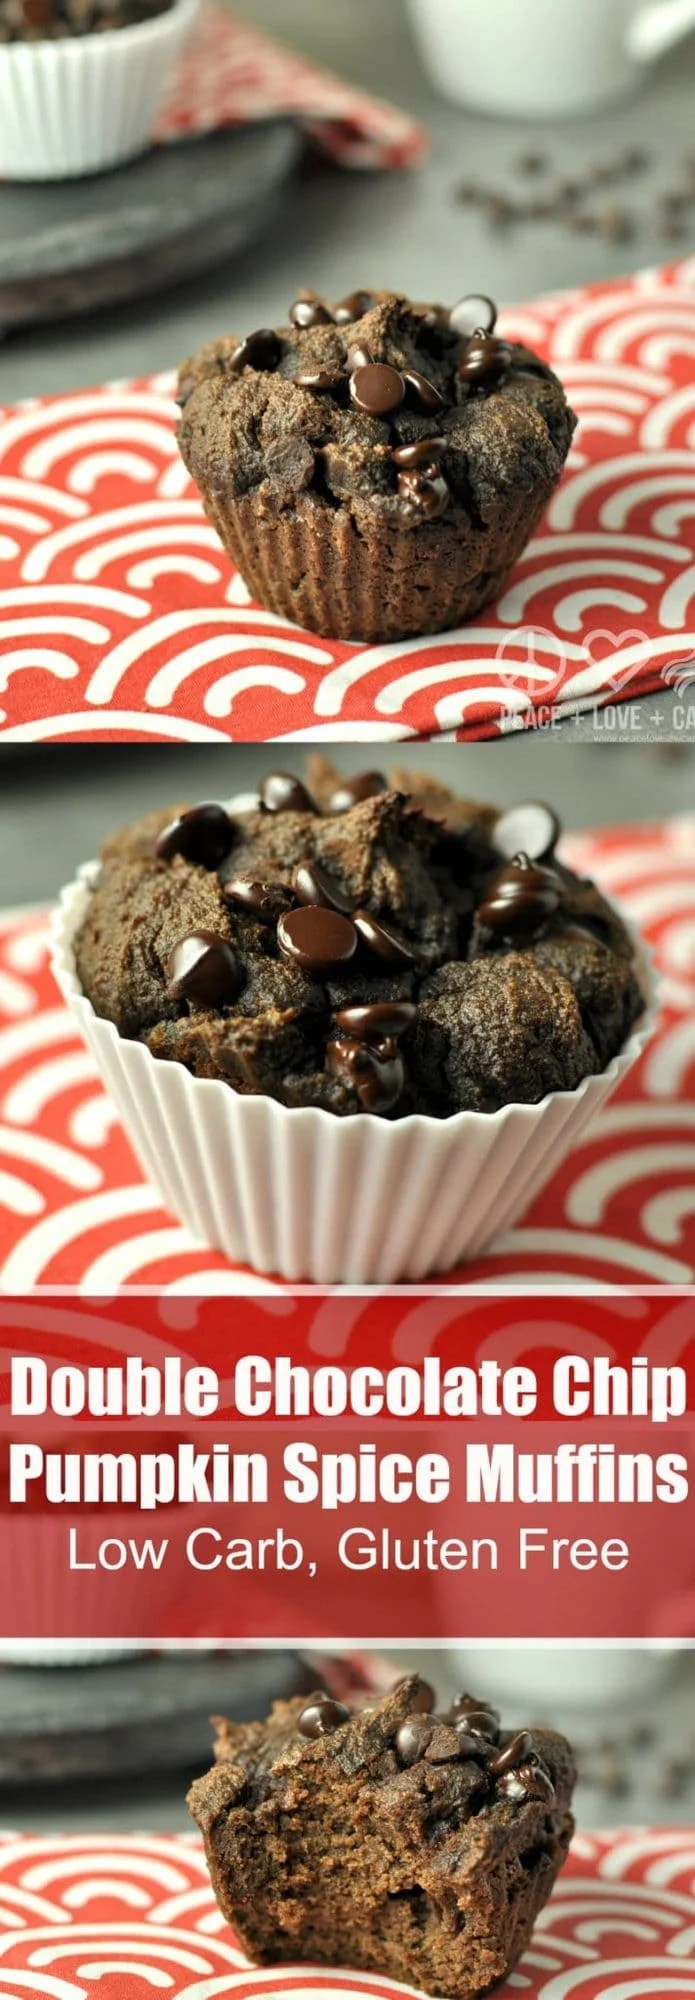 Double Chocolate Chip Pumpkins Spice Muffins - Low Carb, Gluten Free